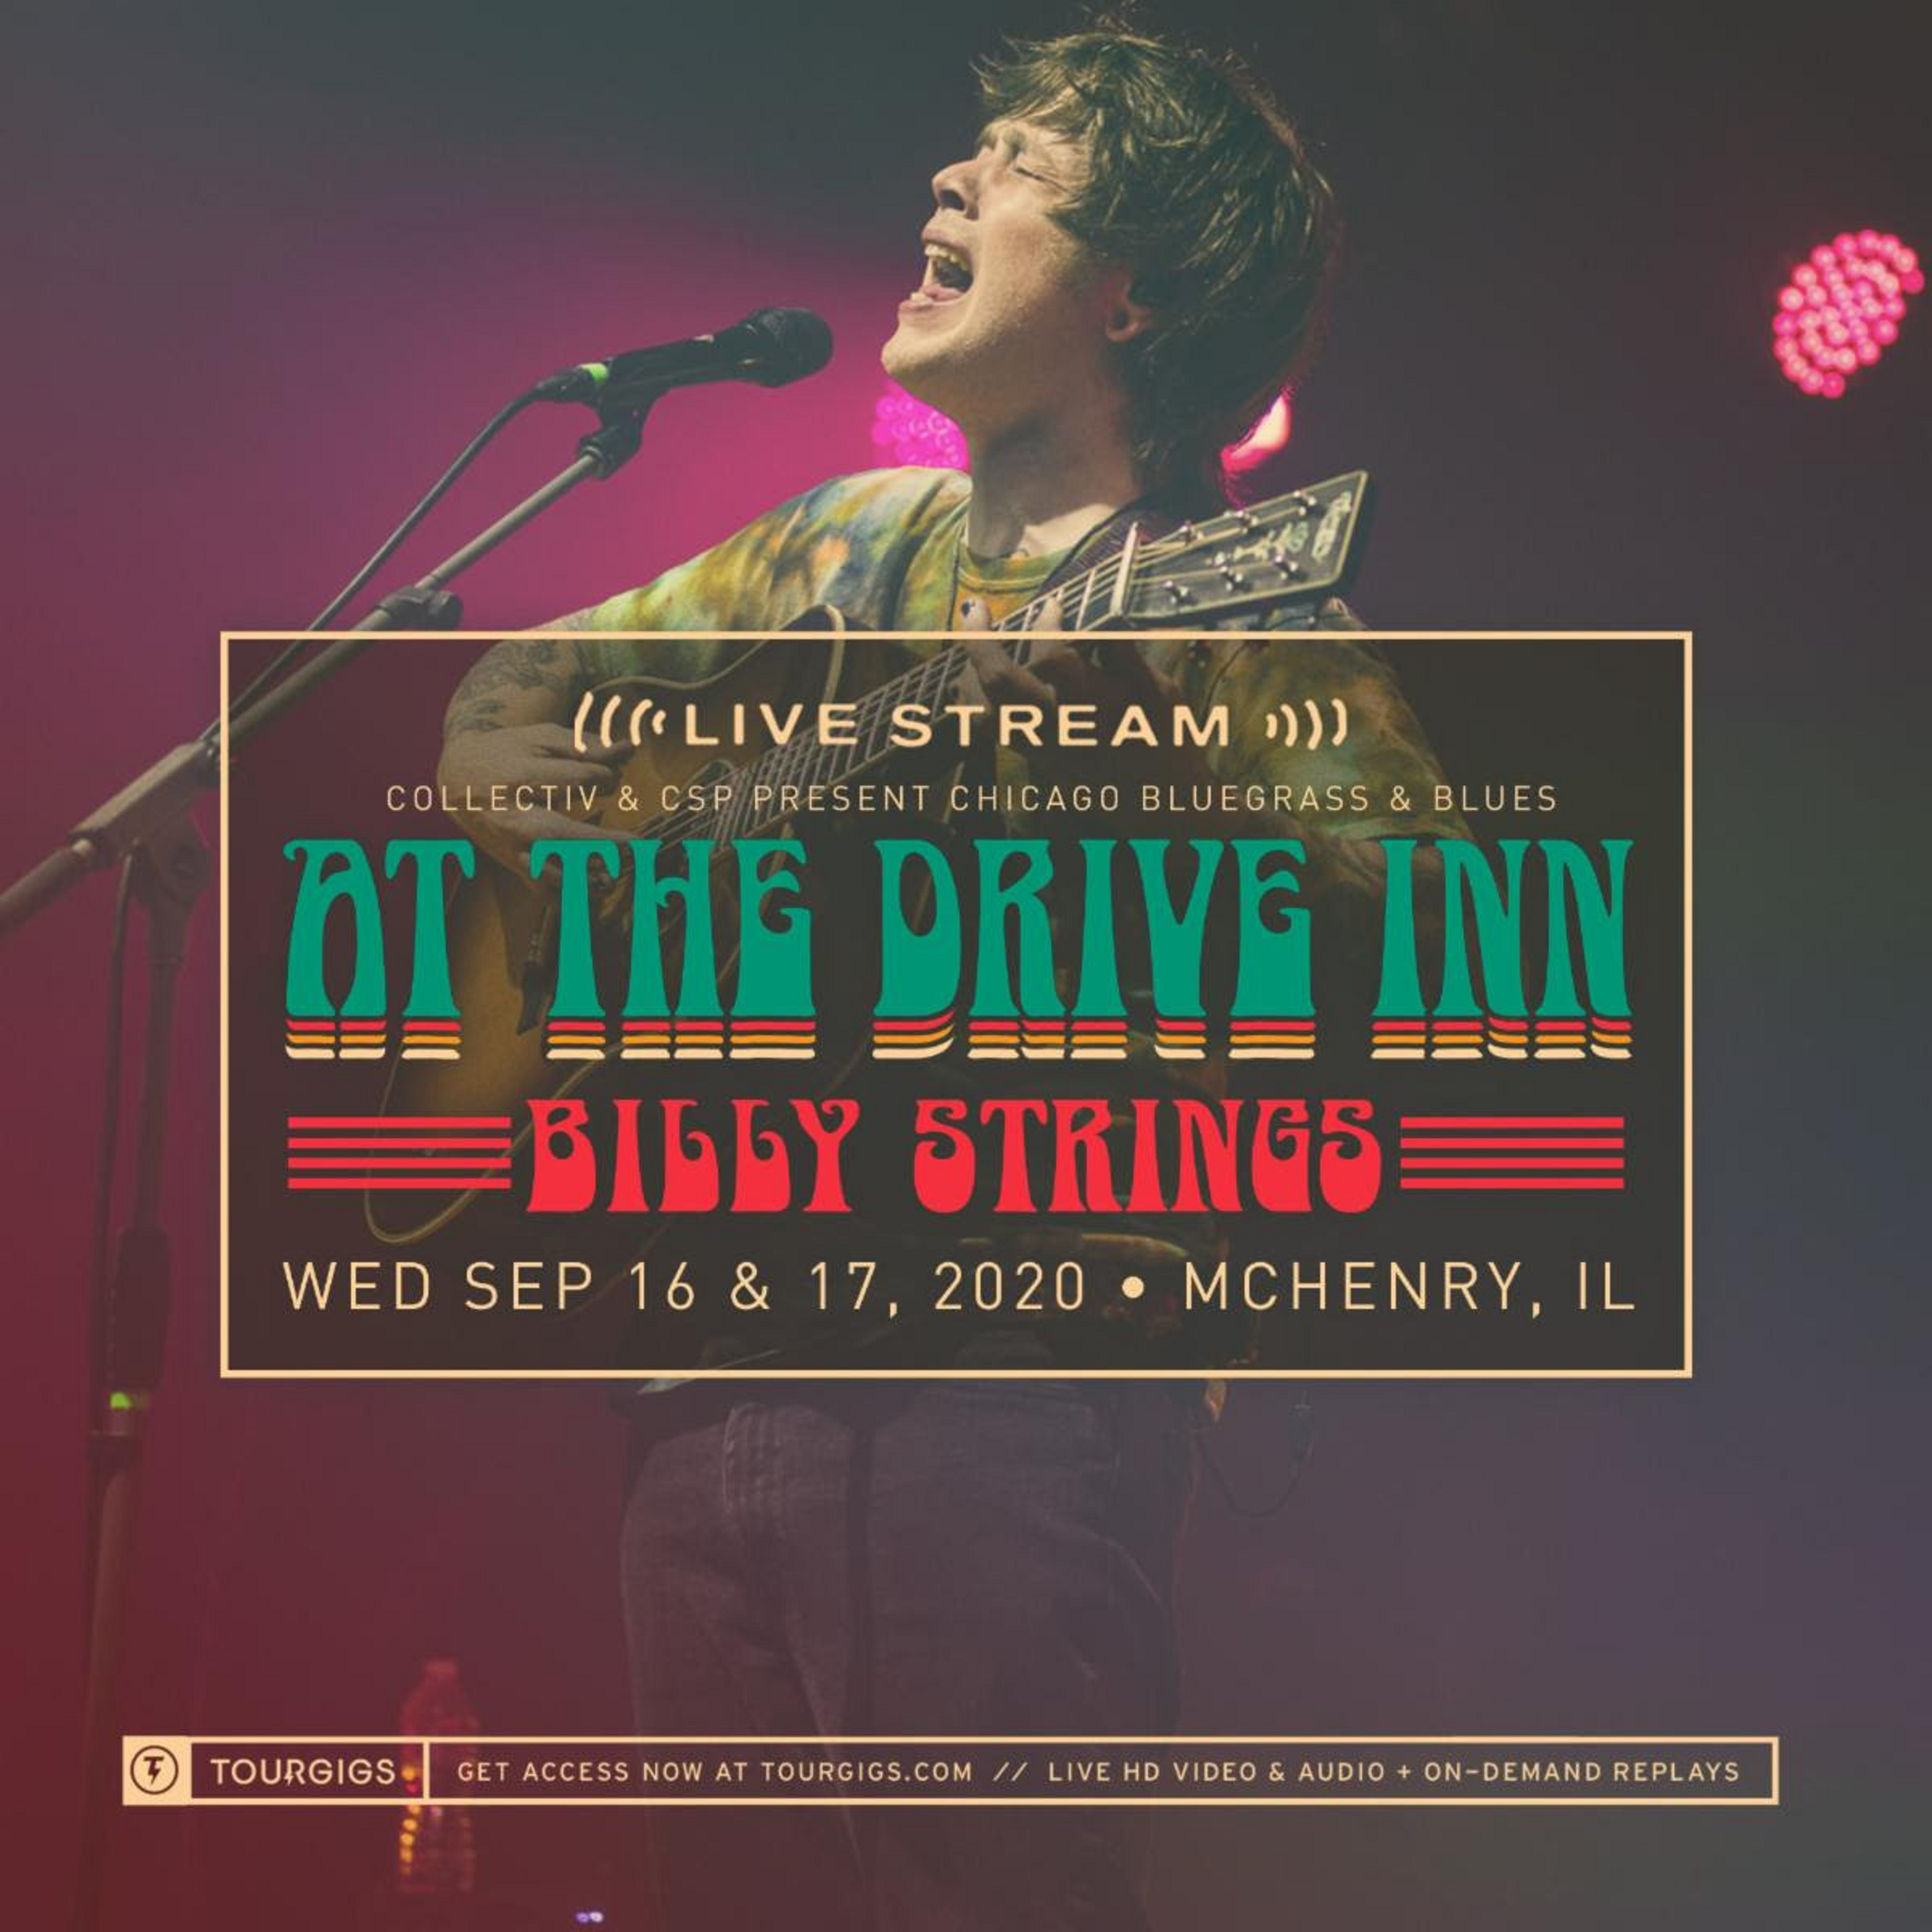 Billy Strings announces livestream ticket options for 'Meet Me At The Drive In Tour'